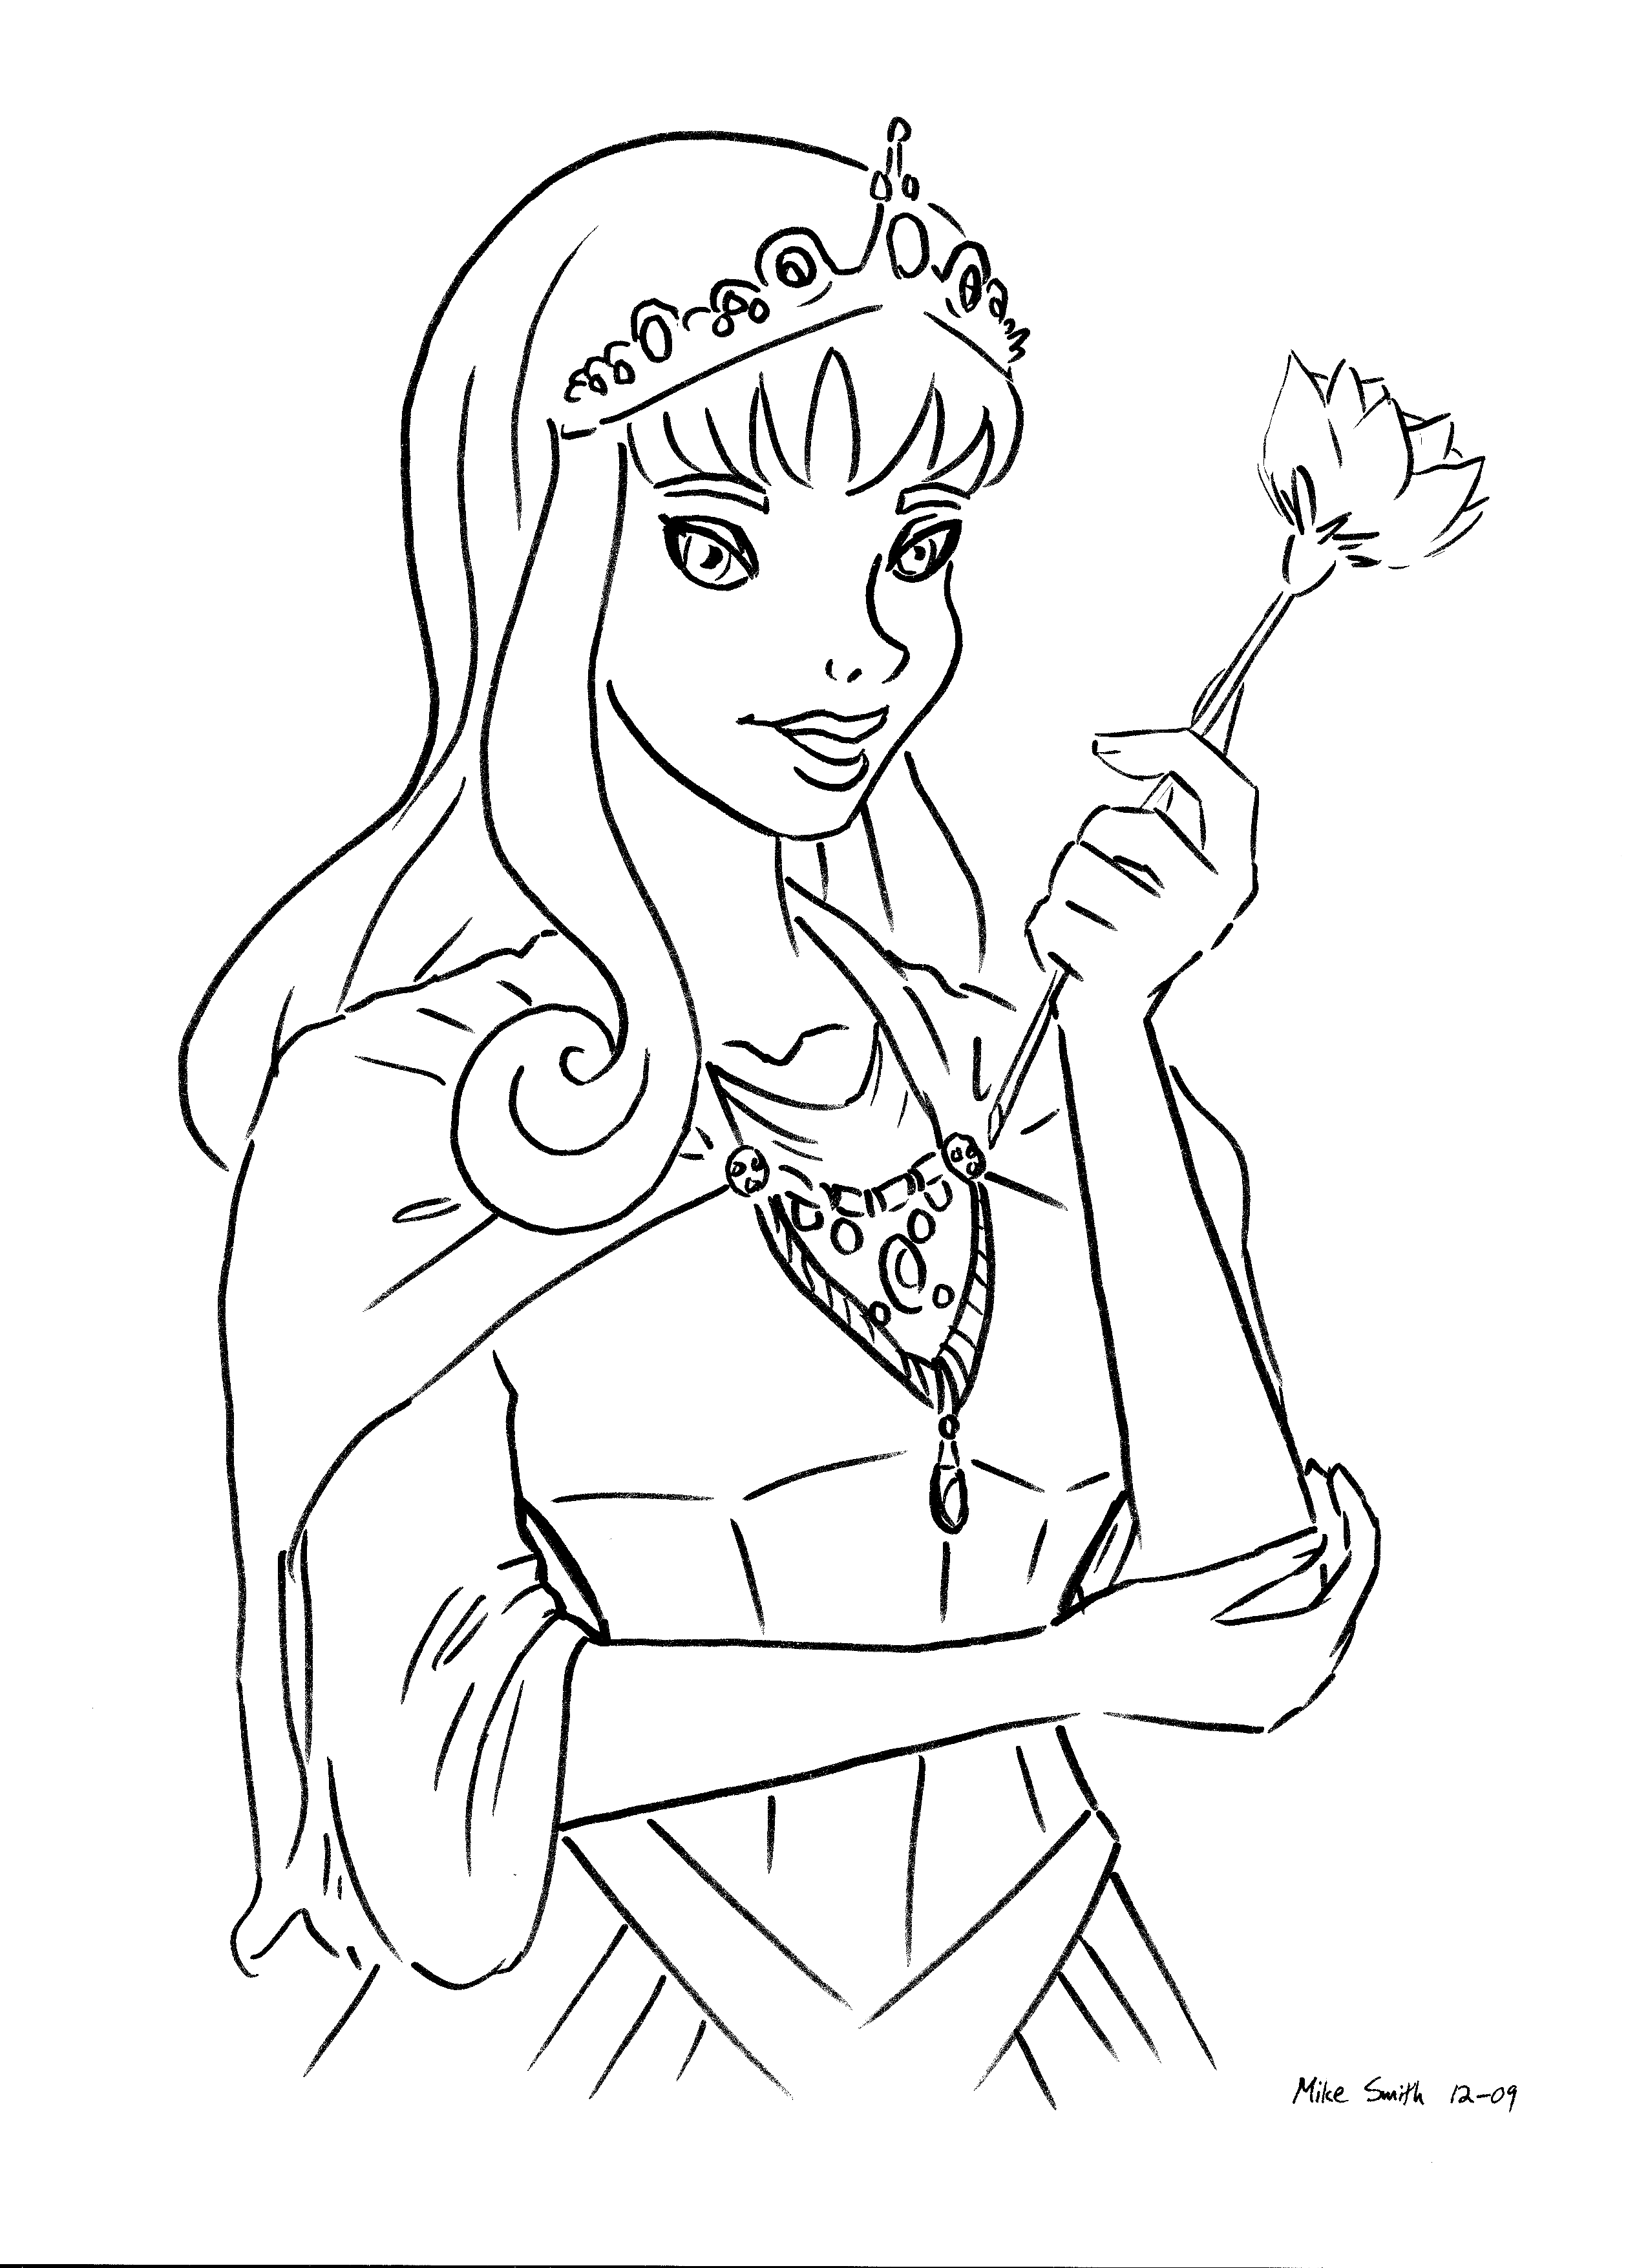 Coloring Book Pages Elecorn The Animated Coder